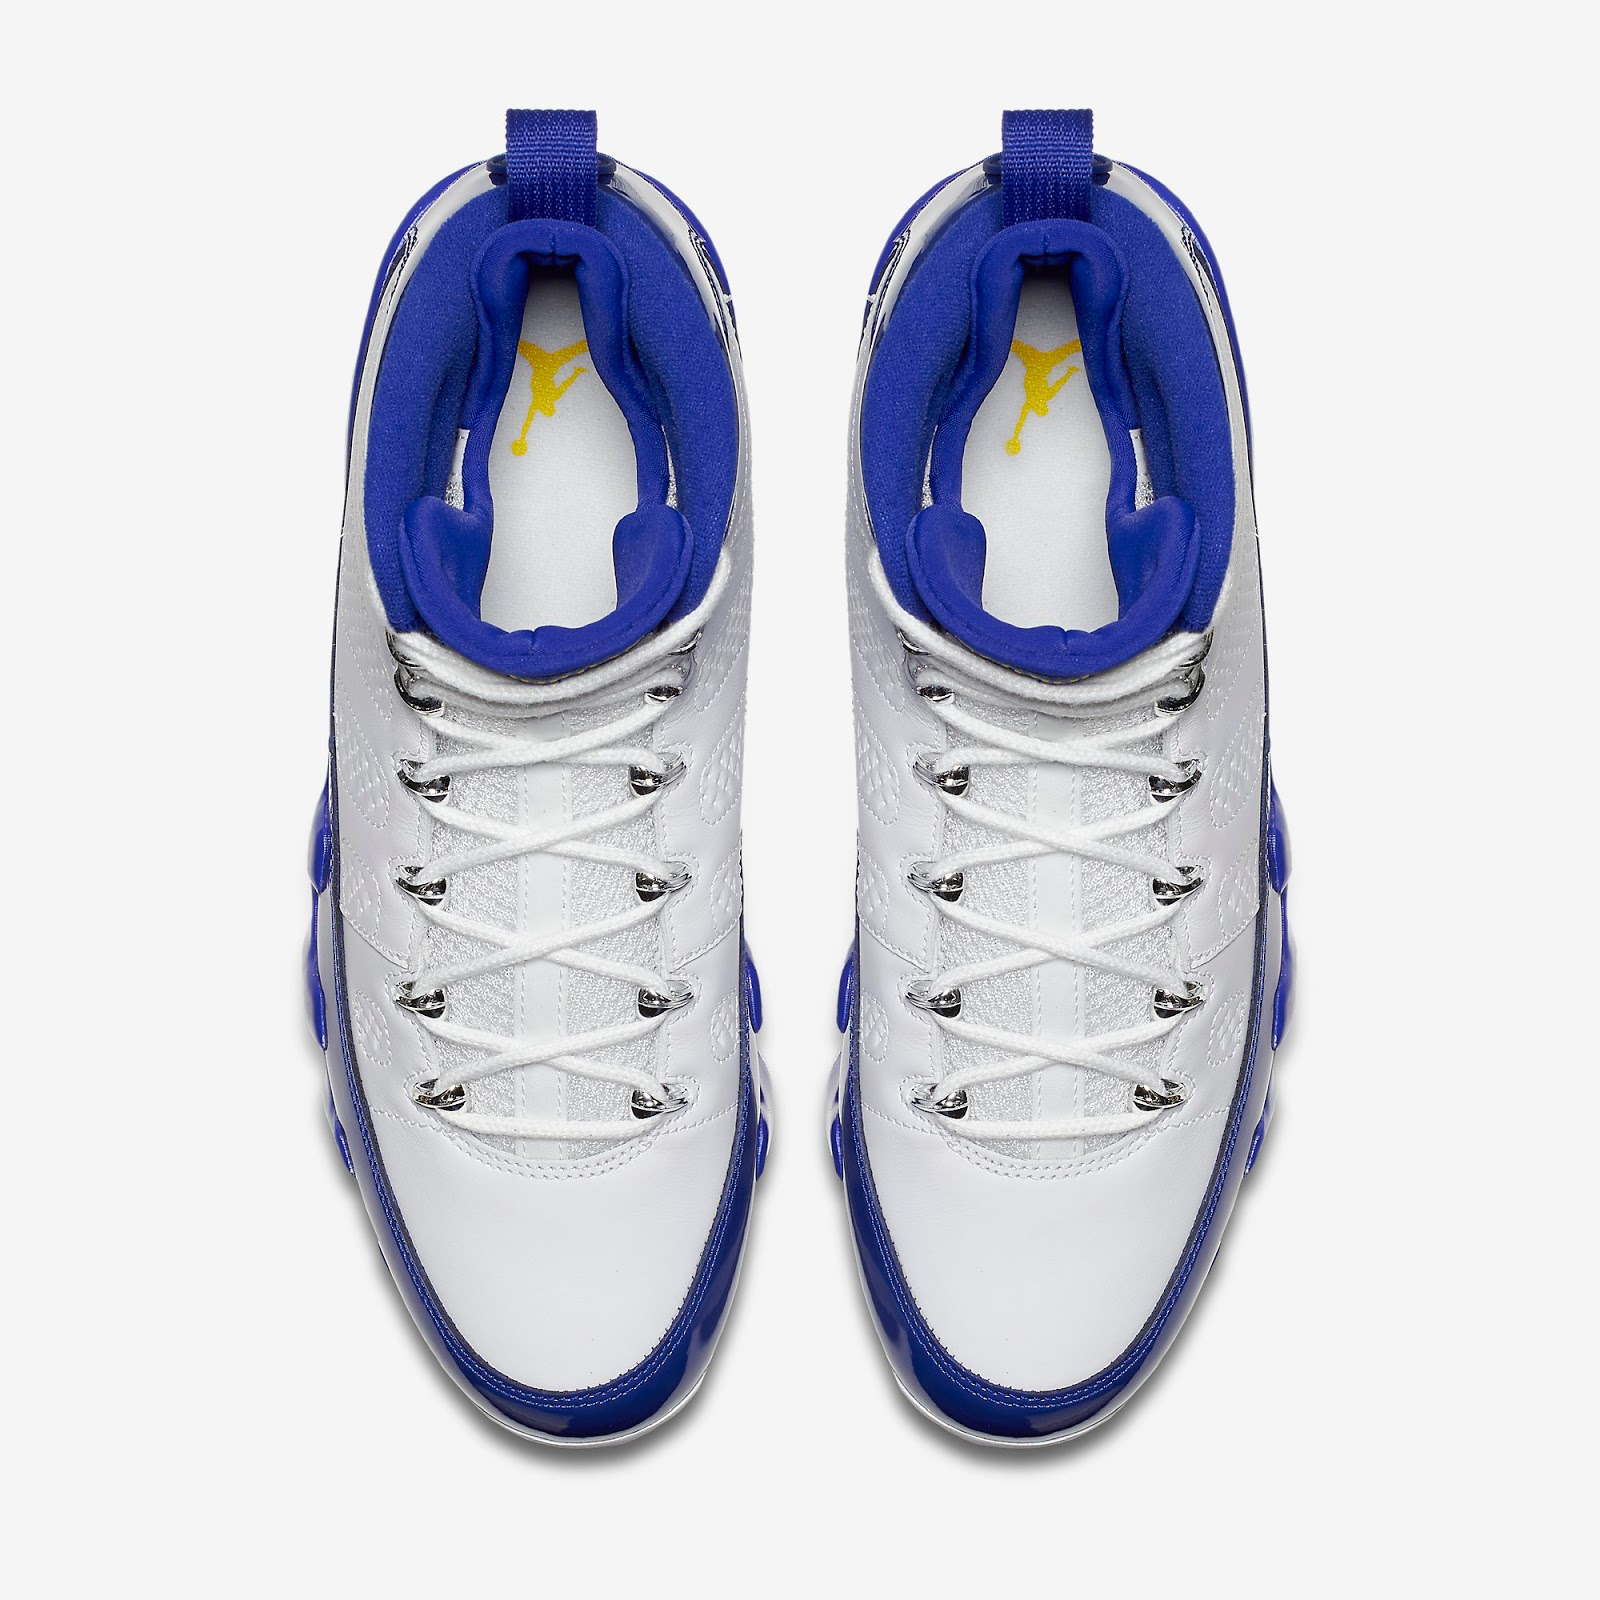 fcf84062c59c79 ajordanxi Your  1 Source For Sneaker Release Dates  Air Jordan 9 ...